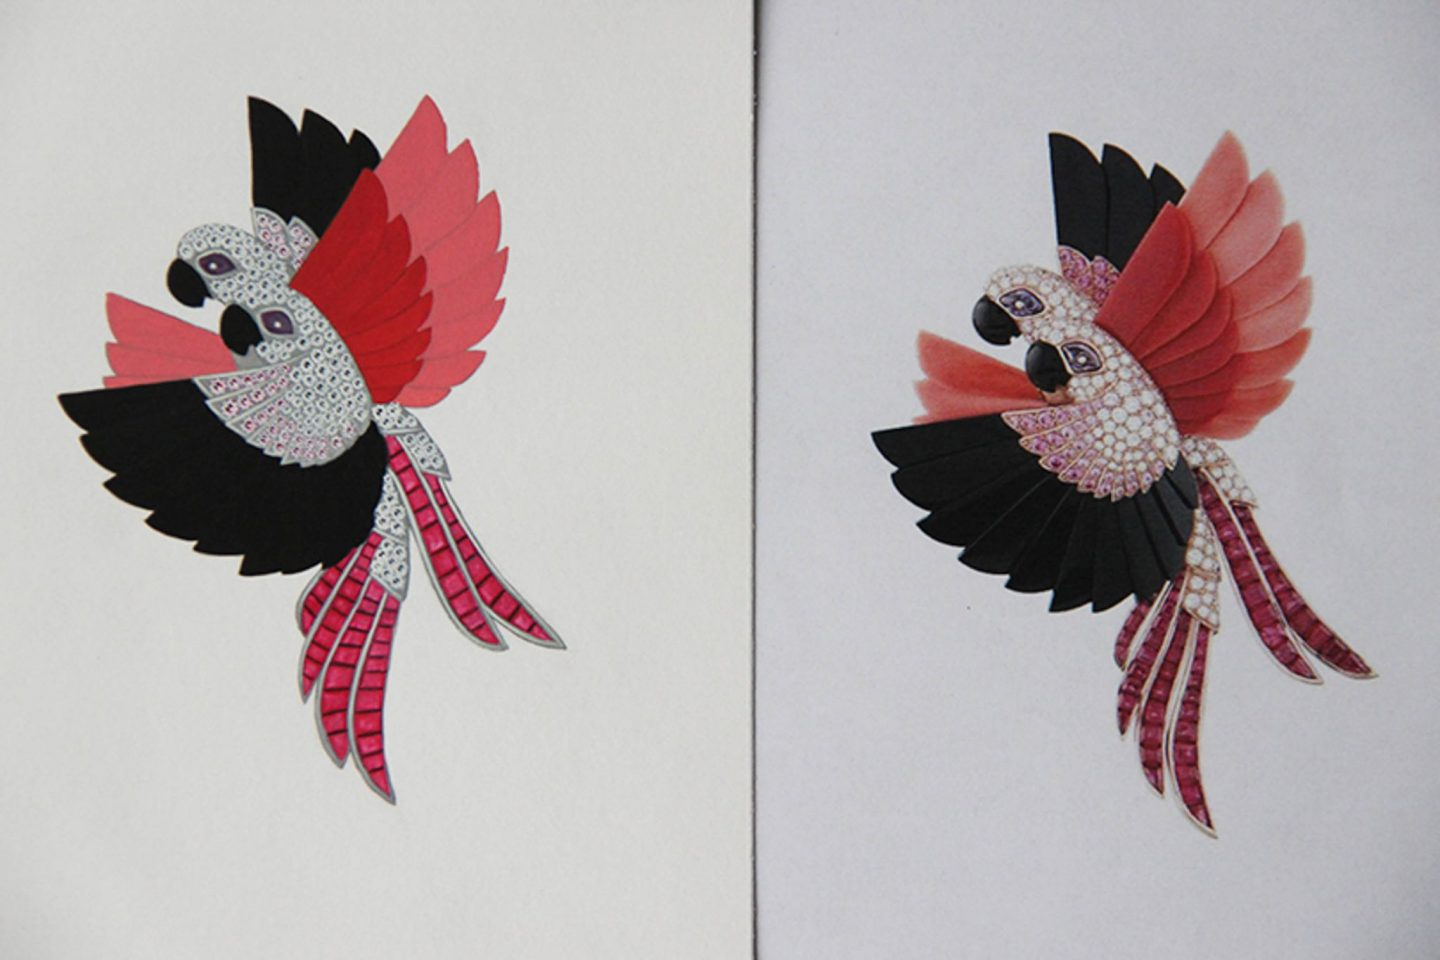 Shine & draw Jewelry drawing reproduction Parrots paradise brooch